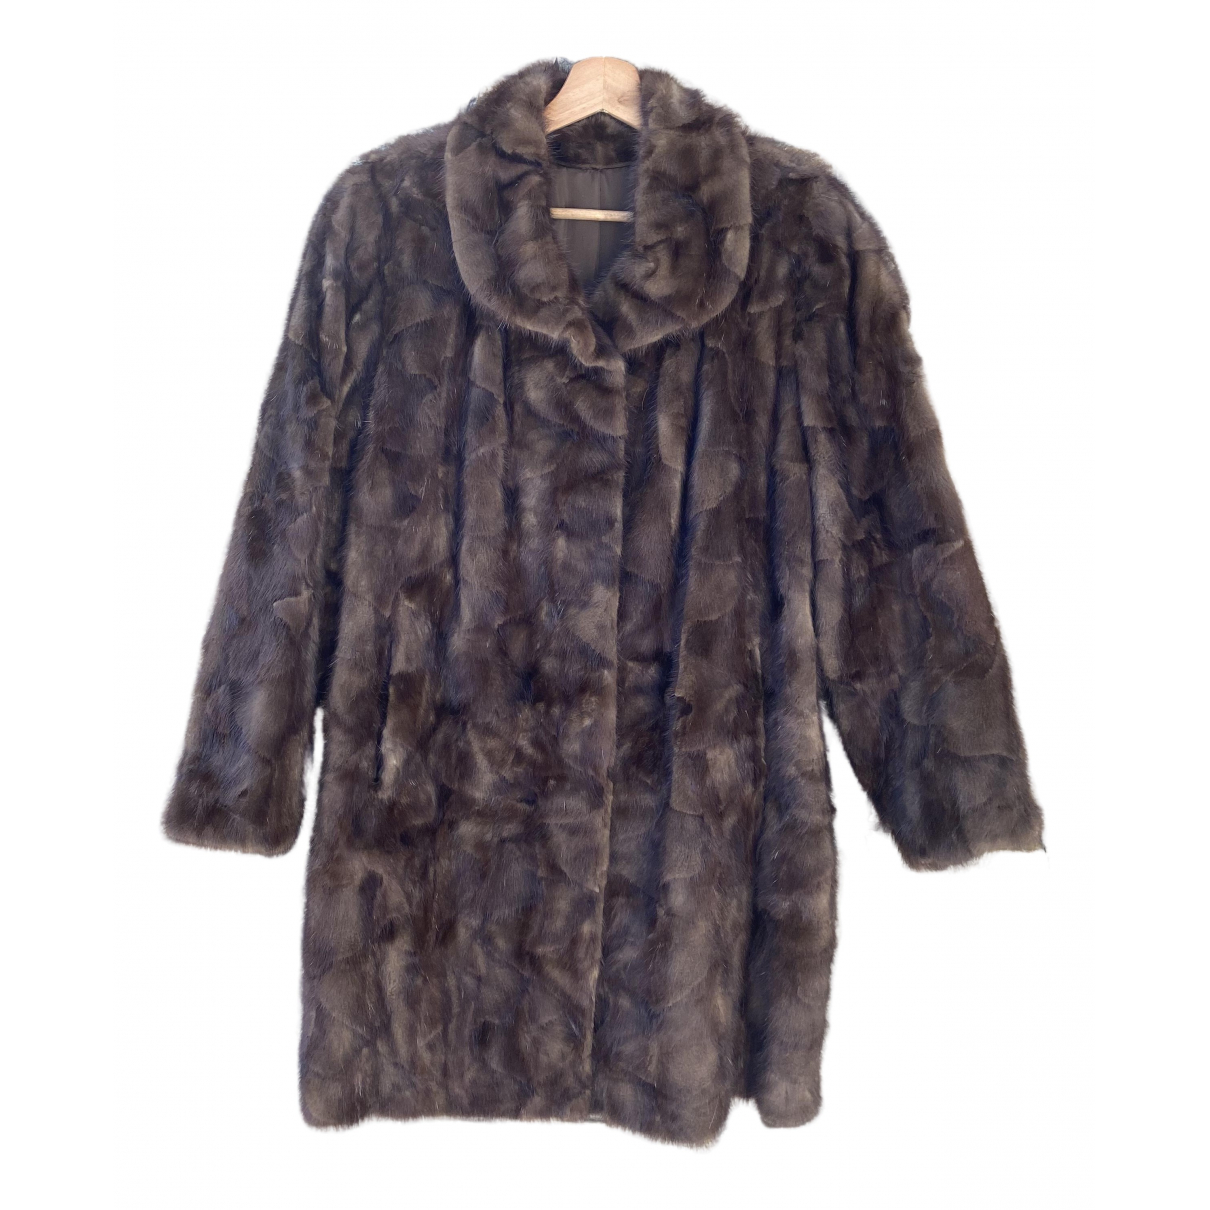 Non Signé / Unsigned N Brown Mink coat for Women One Size FR